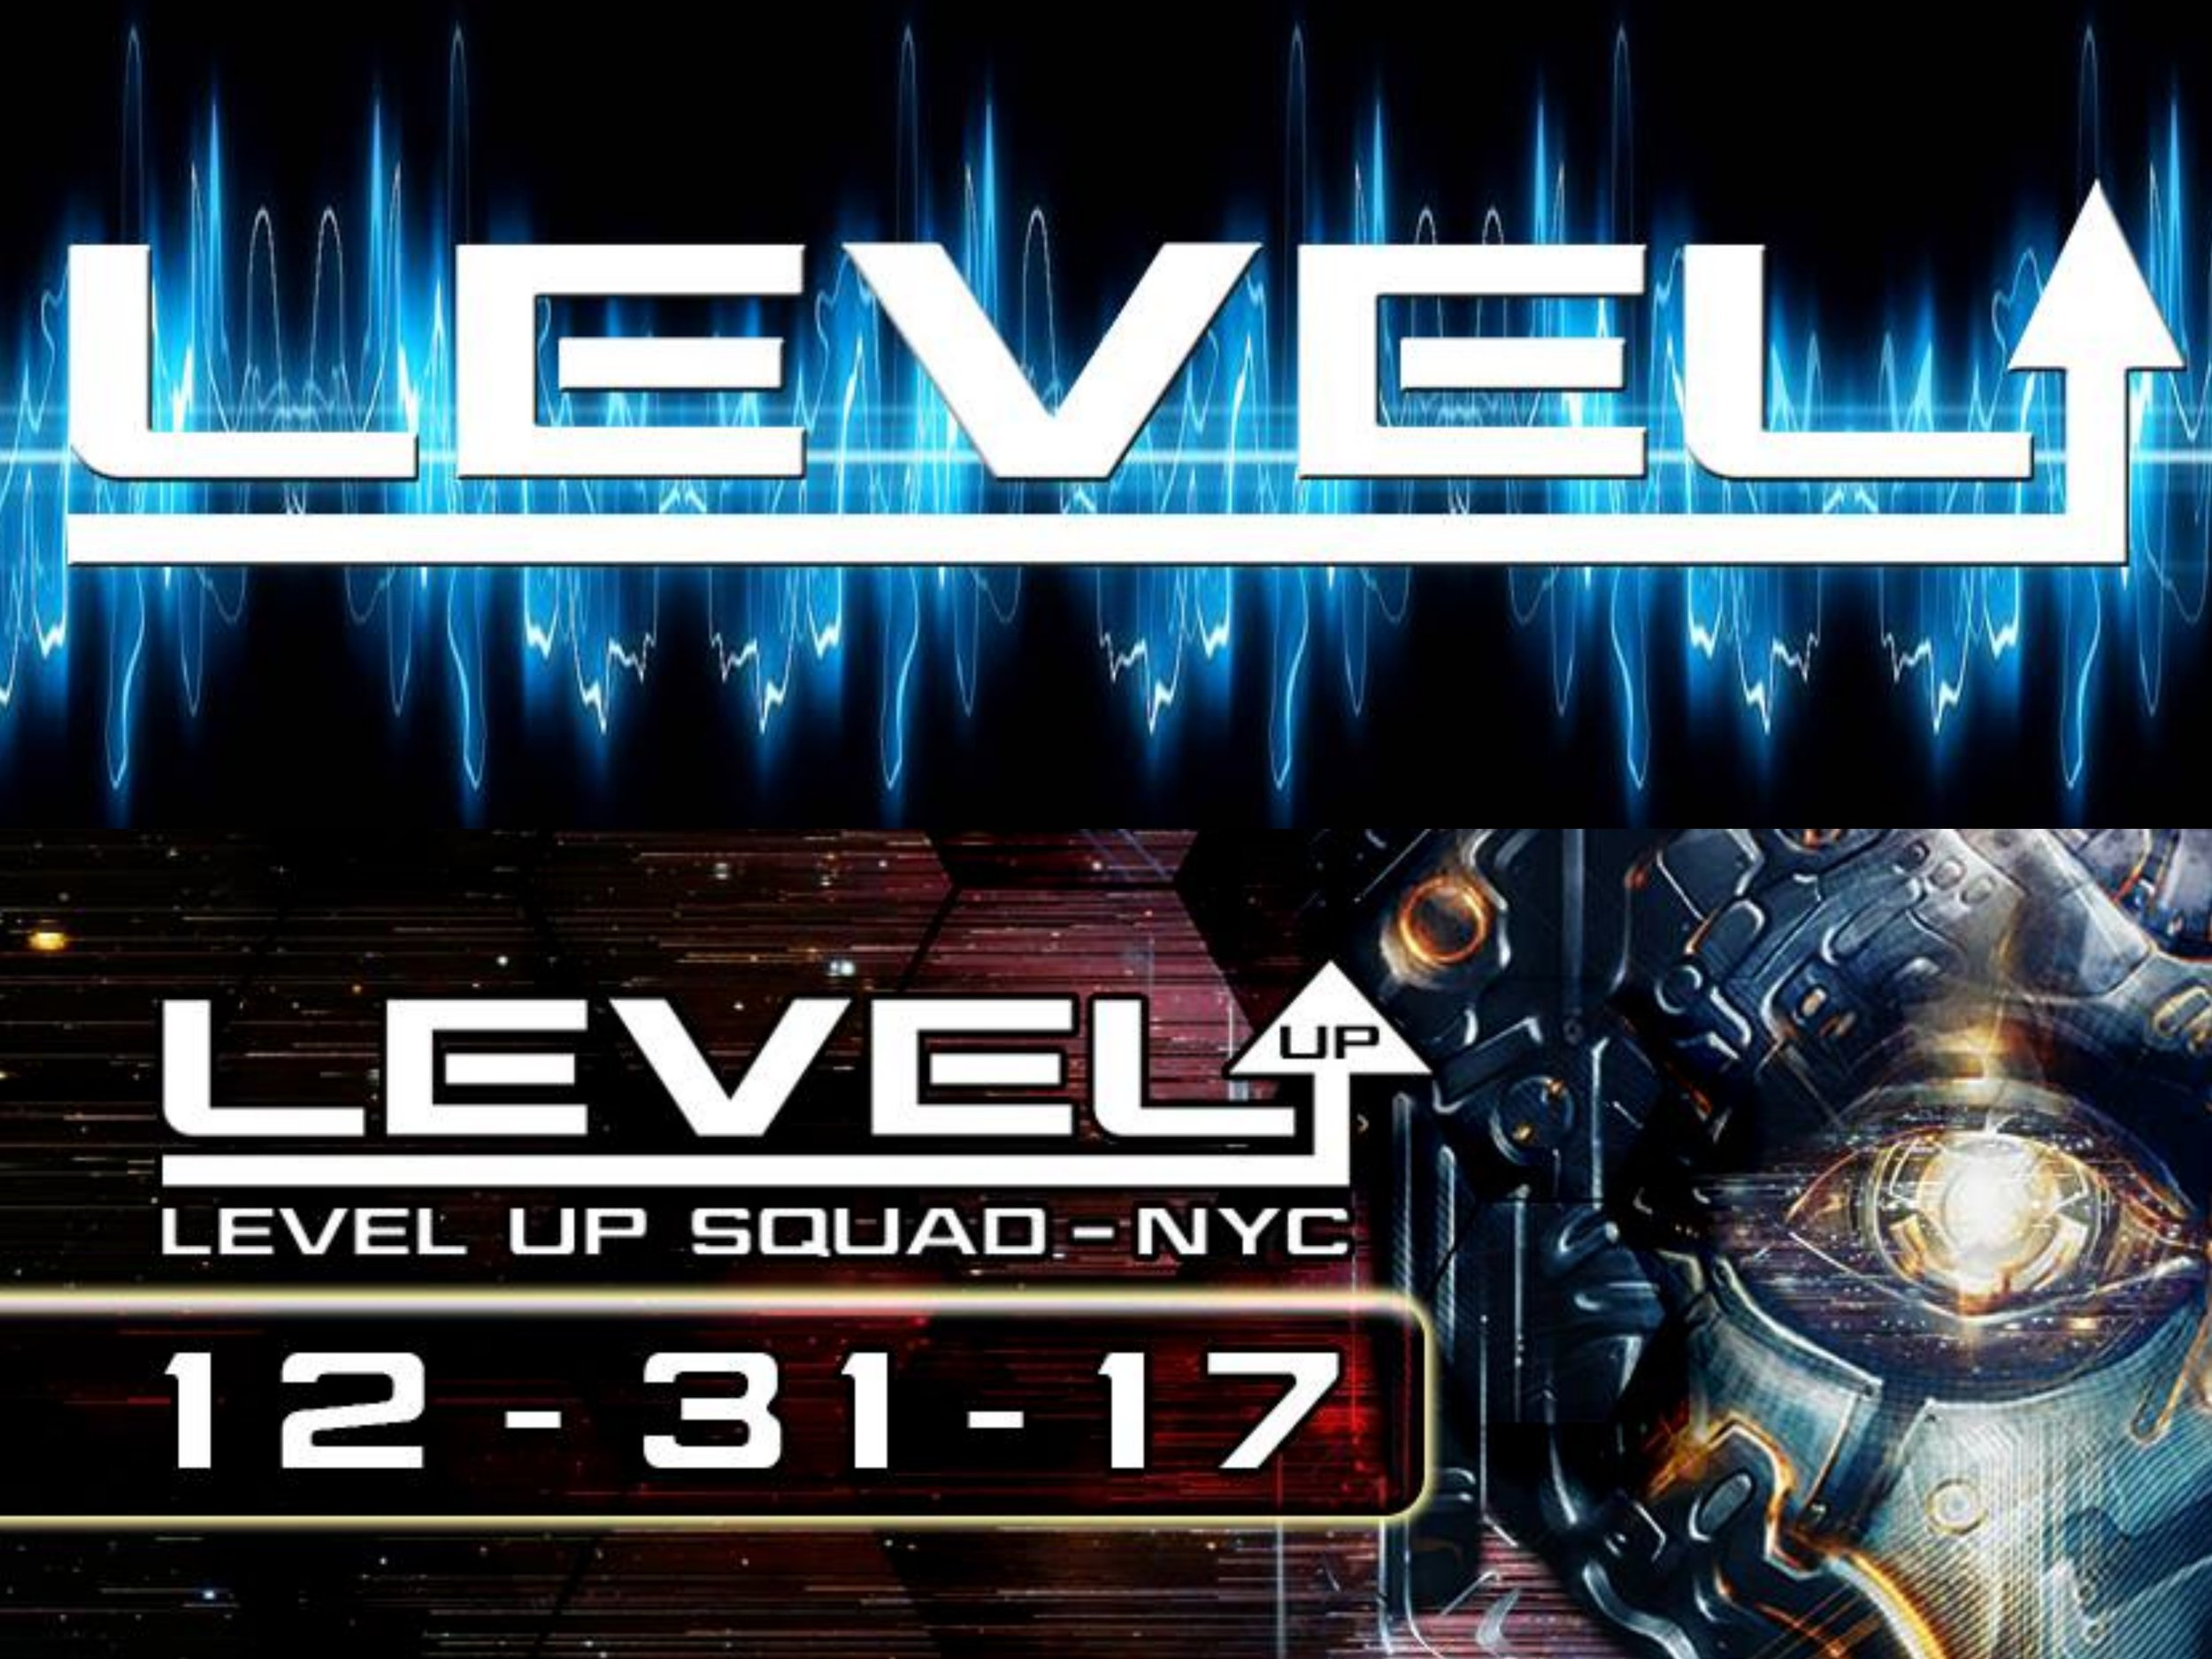 Level Up Squad Collage Banner_Fotor.jpg